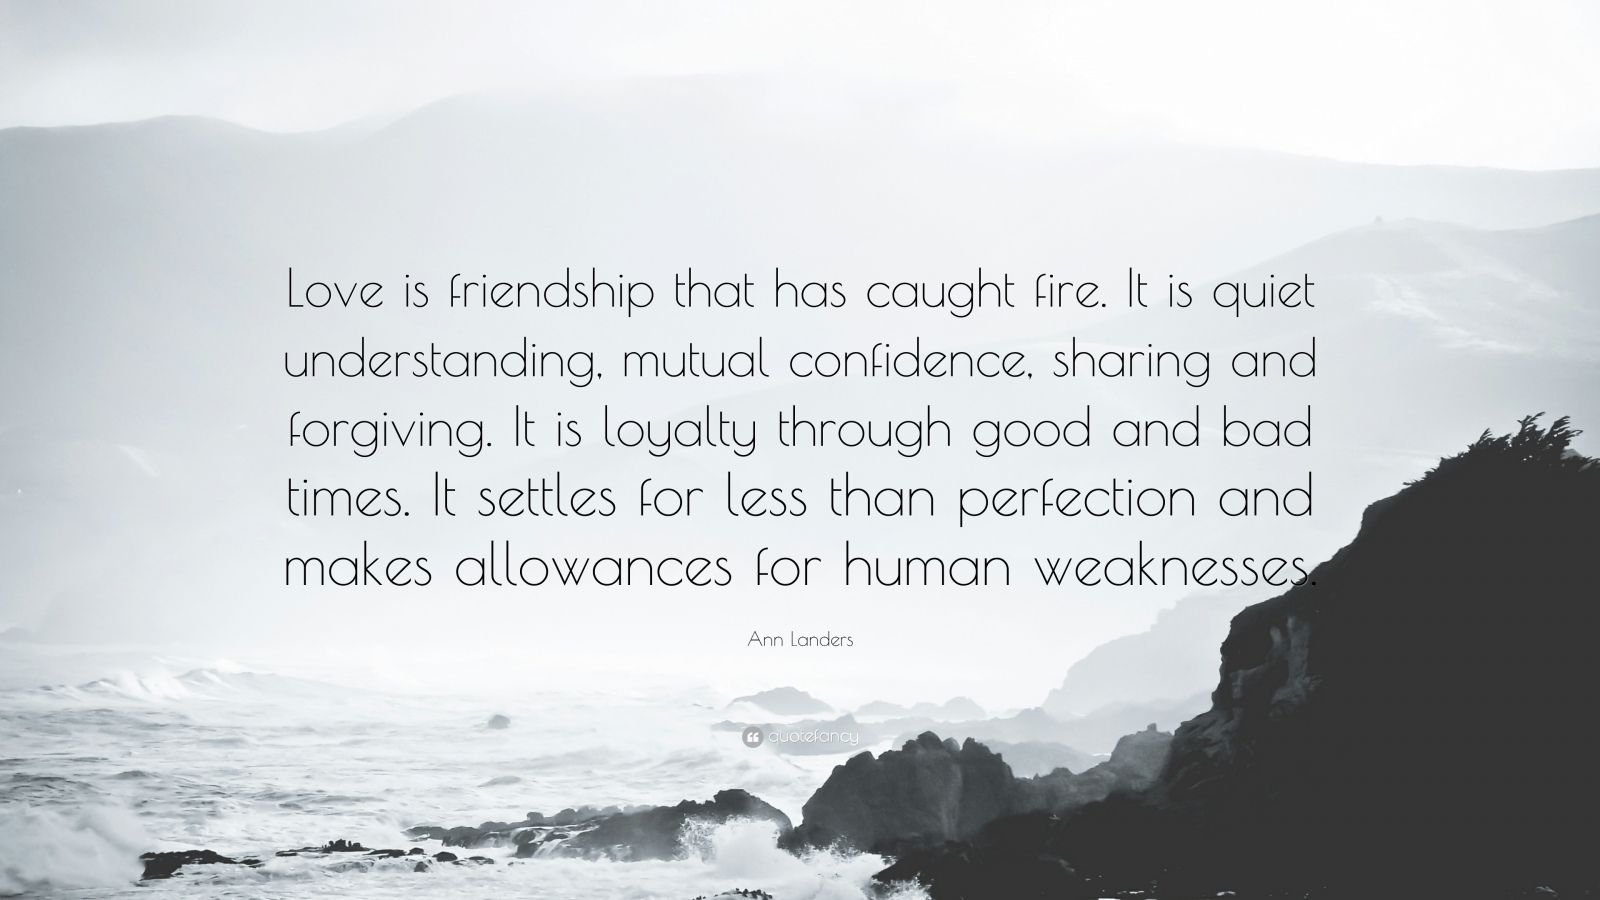 """Ann Landers Quote: """"Love is friendship that has caught fire. It is quiet understanding, mutual confidence, sharing and forgiving. It is loyalty through good and bad times. It settles for less than perfection and makes allowances for human weaknesses."""""""